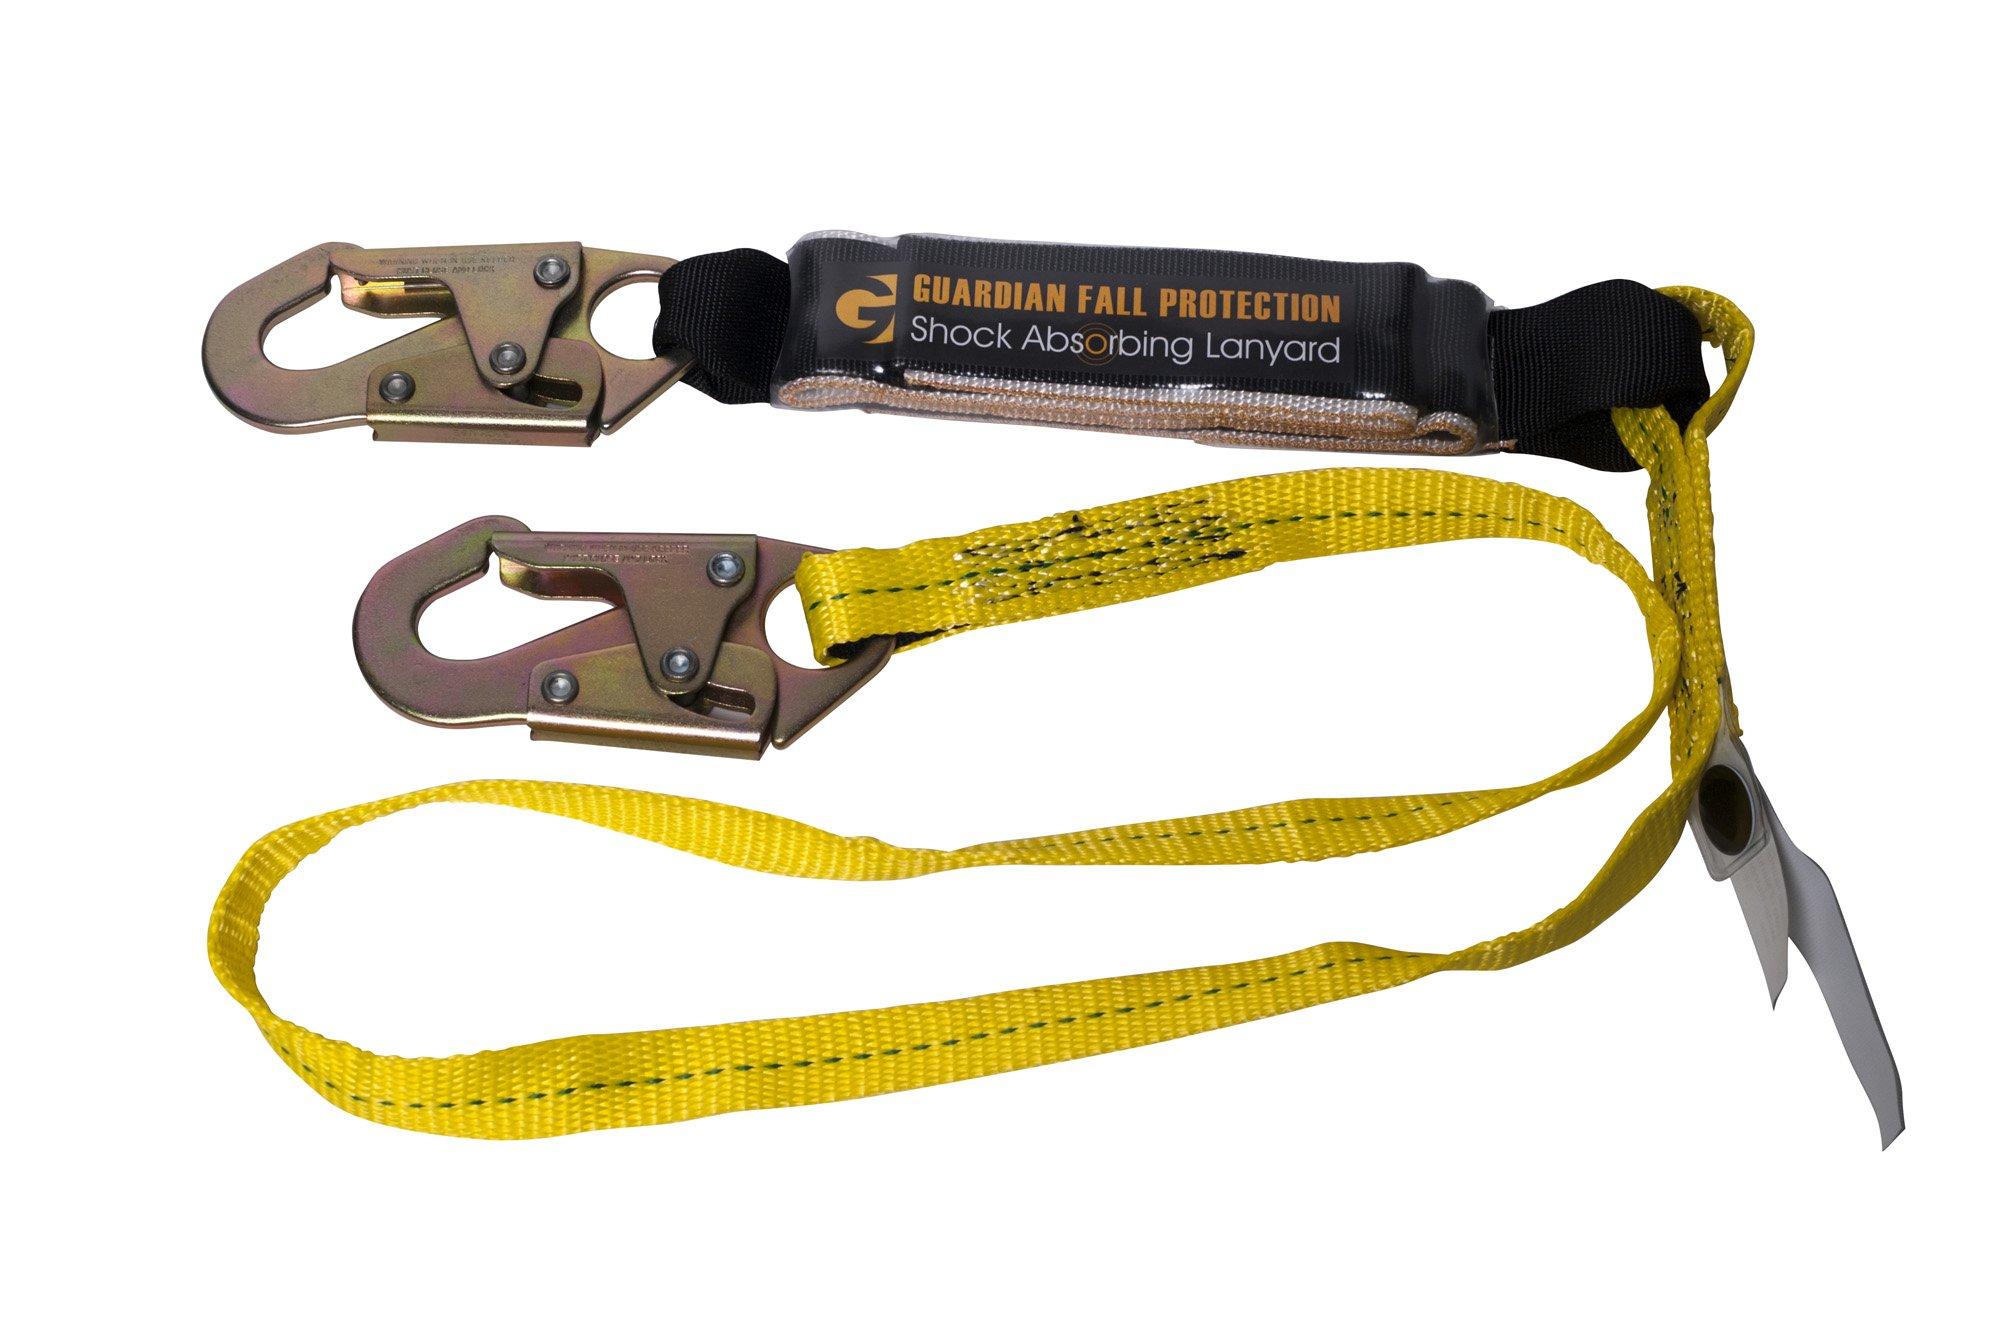 Guardian Fall Protection 01220 6-Foot Single Leg Shock Absorbing Lanyard by Guardian Fall Protection